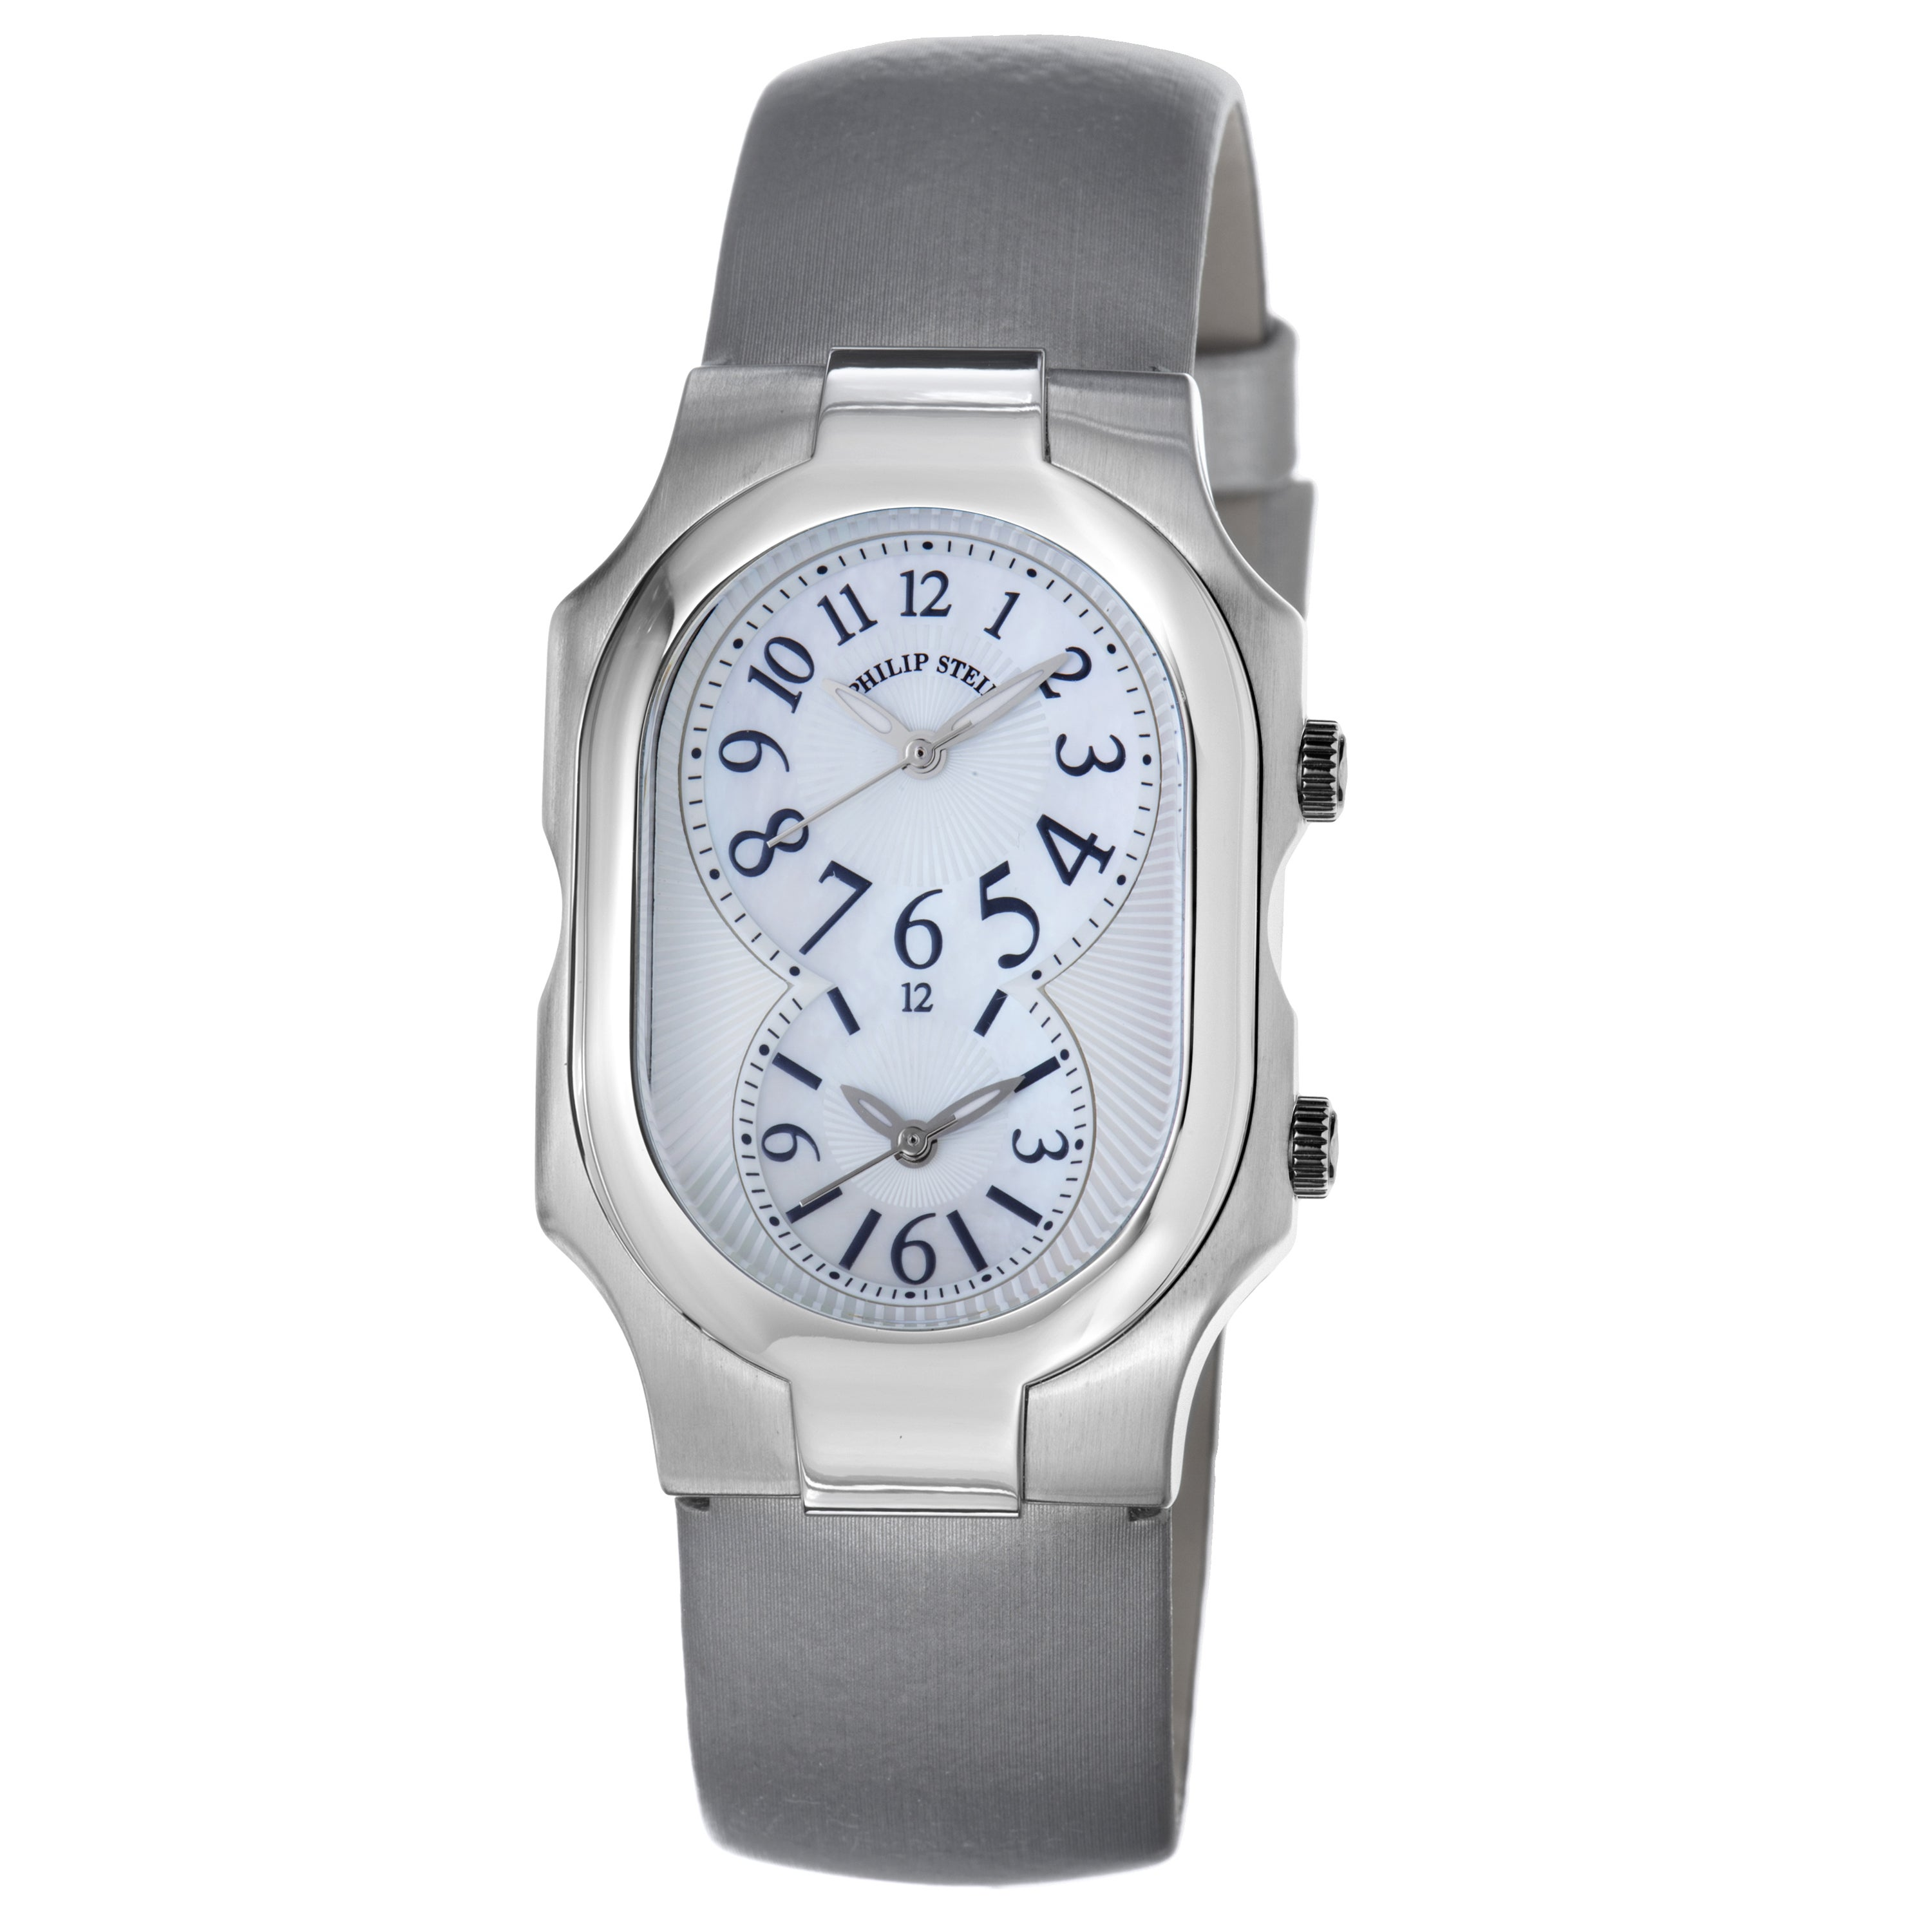 Shop philip stein women 39 s 39 signature 39 platinum silk strap dual time watch free shipping today for Philip stein watches